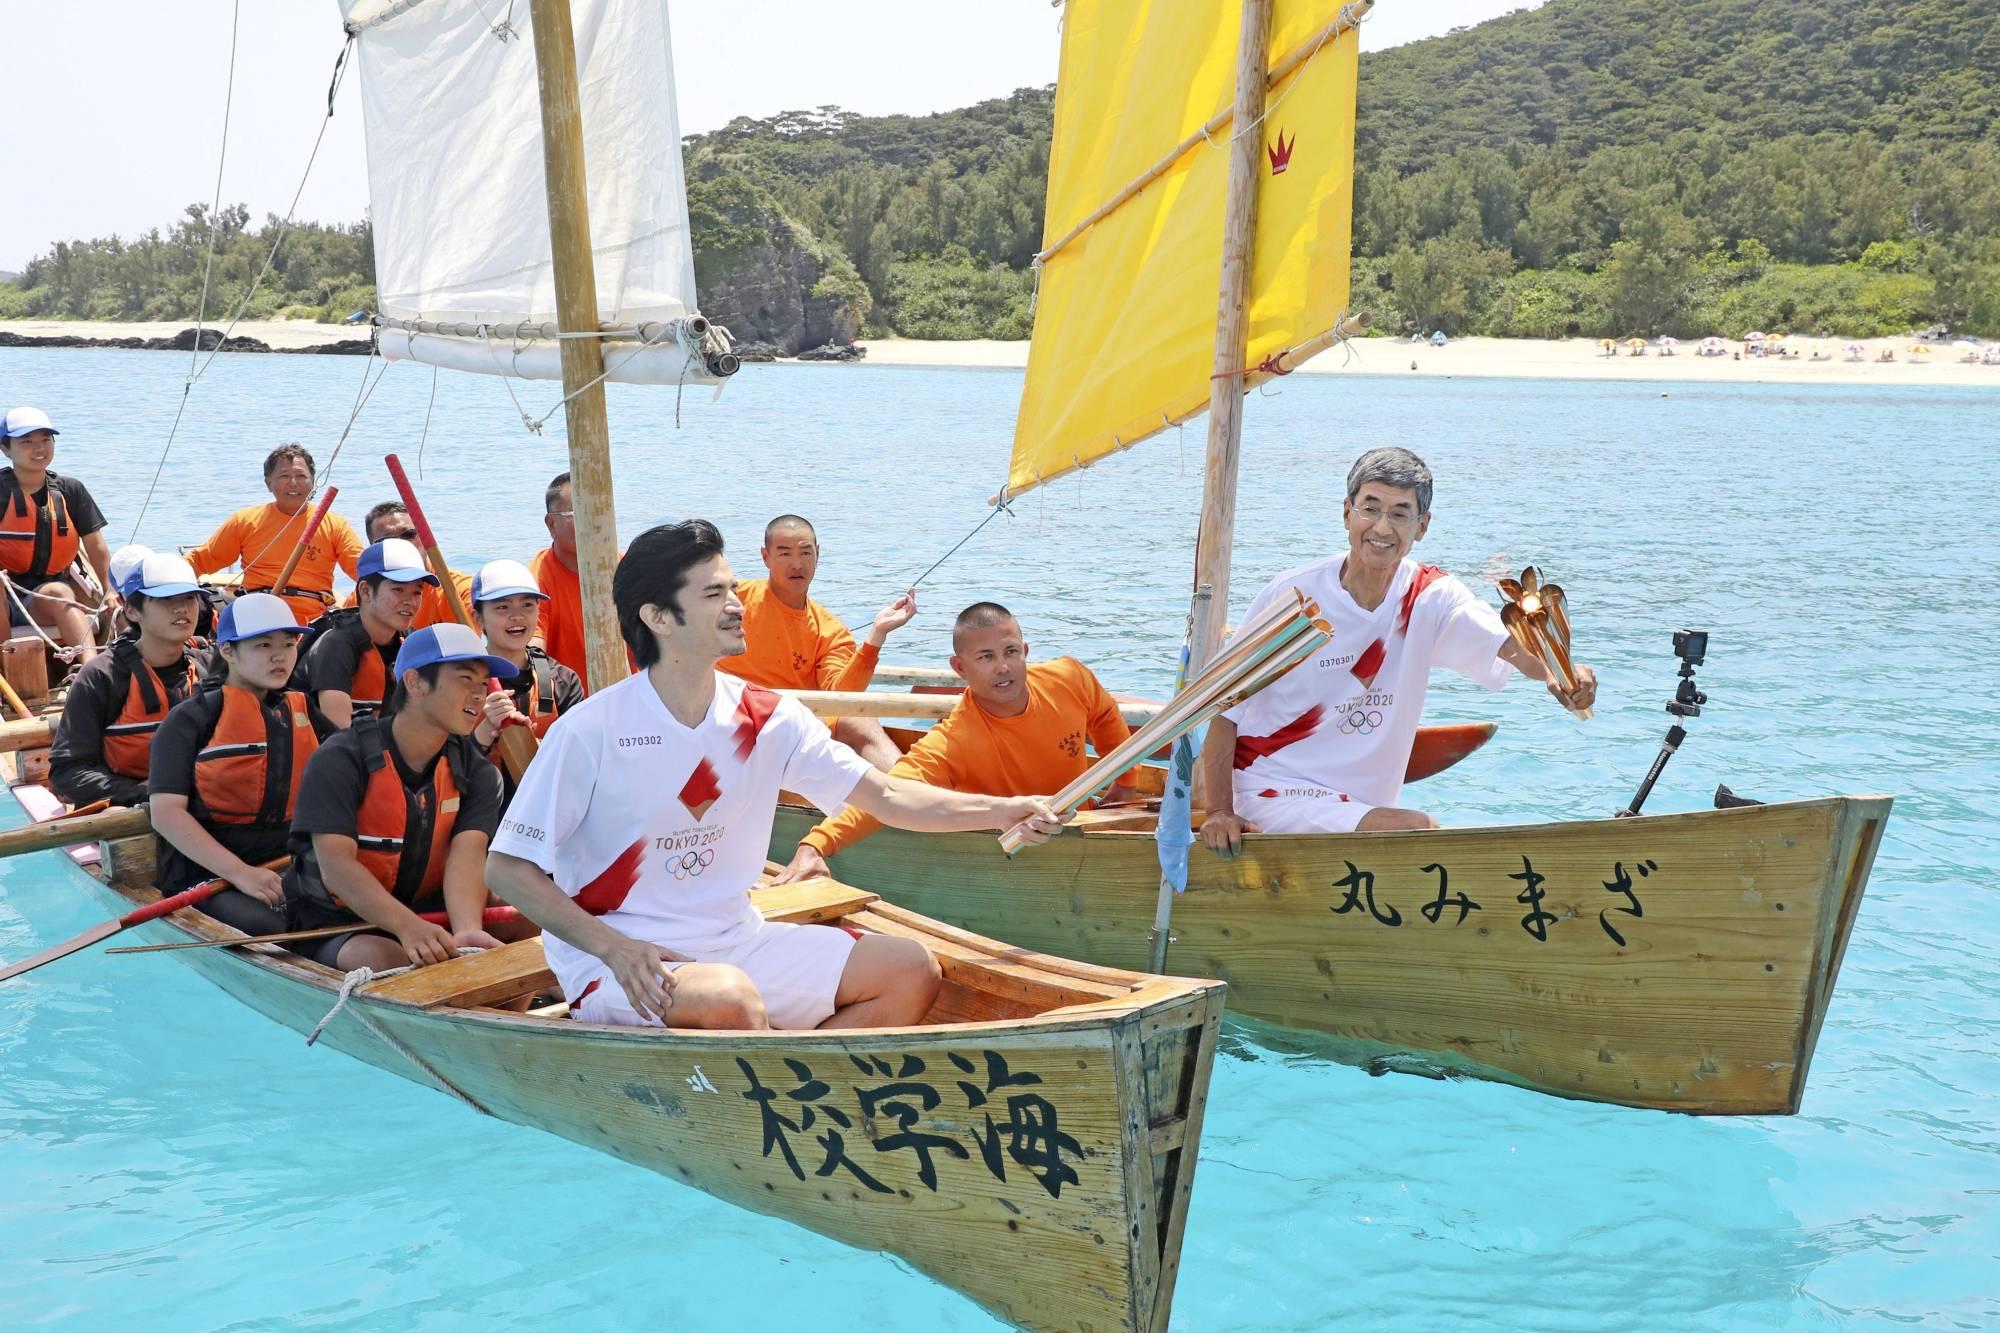 The Olympic flame is passed from torch to torch on traditional rowboats during the Tokyo 2020 Olympics torch relay off Zamami in Okinawa on May 2. | KYODO / VIA REUTERS